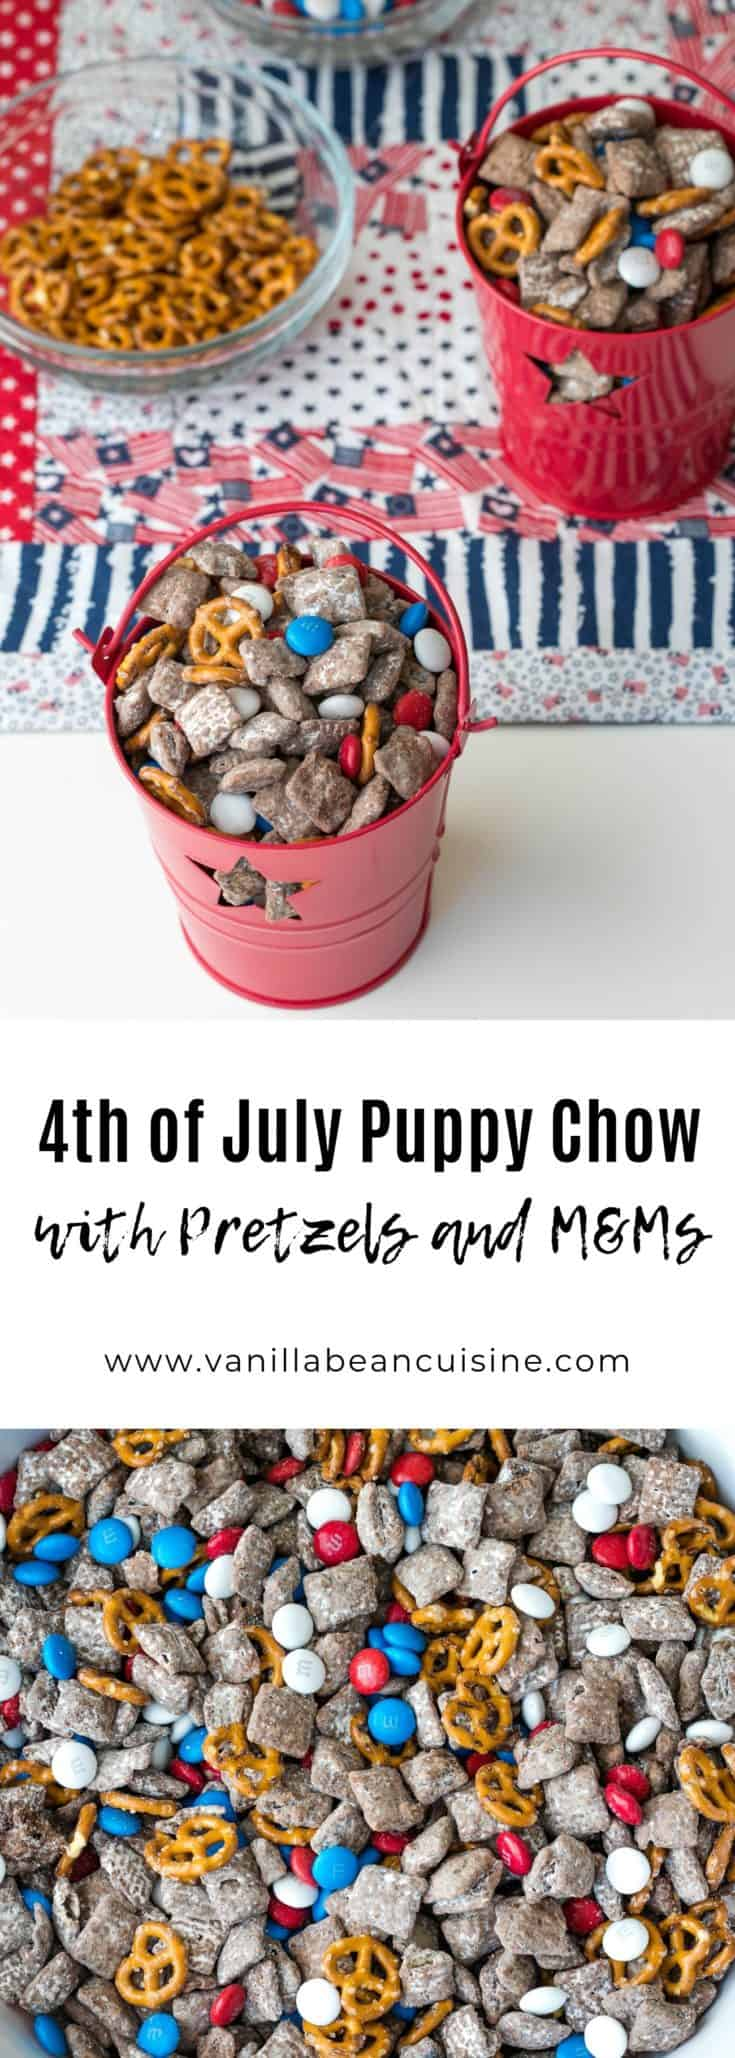 This patriotic puppy chow is an easy and delicious recipe for your 4th of July festivities. Chocolate-peanut butter-covered Chex tossed in confectioners sugar and combined with pretzels and M&Ms. #4thofJuly #puppychow #dessert #4thofJulyfood #vanillabeancuisine